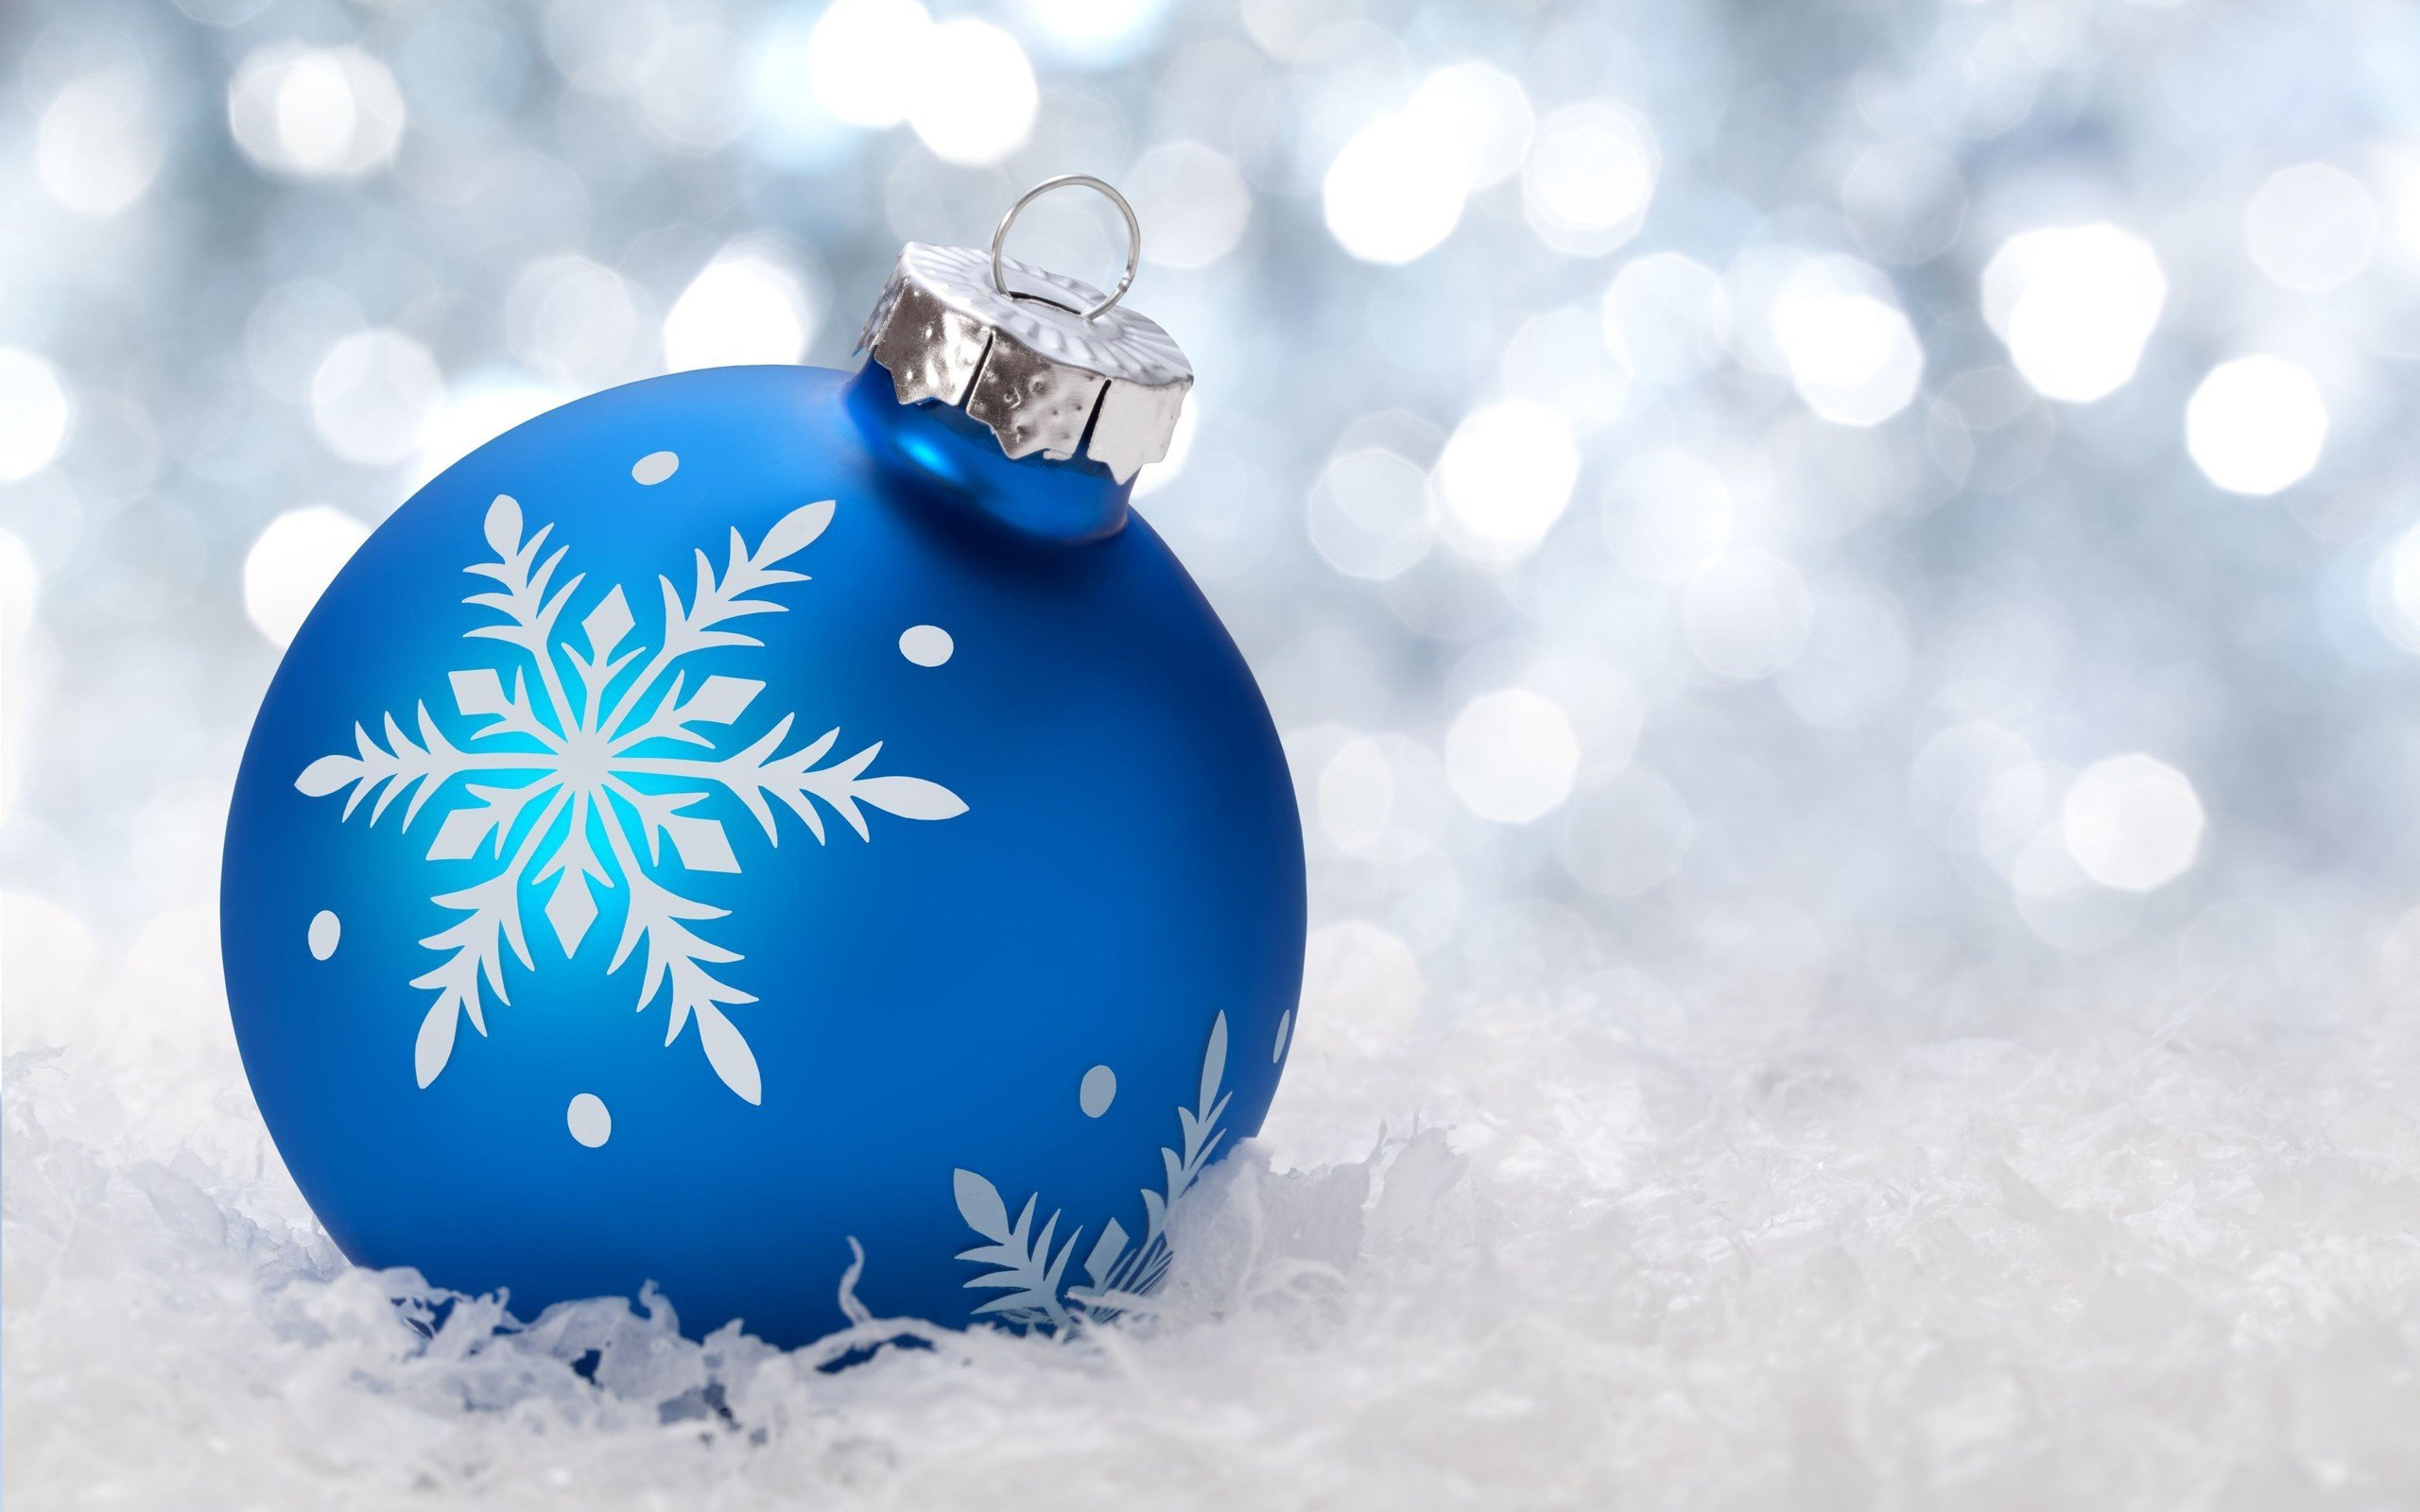 New Year, Snow, Christmas ornaments, Bokeh HD Wallpapers ...